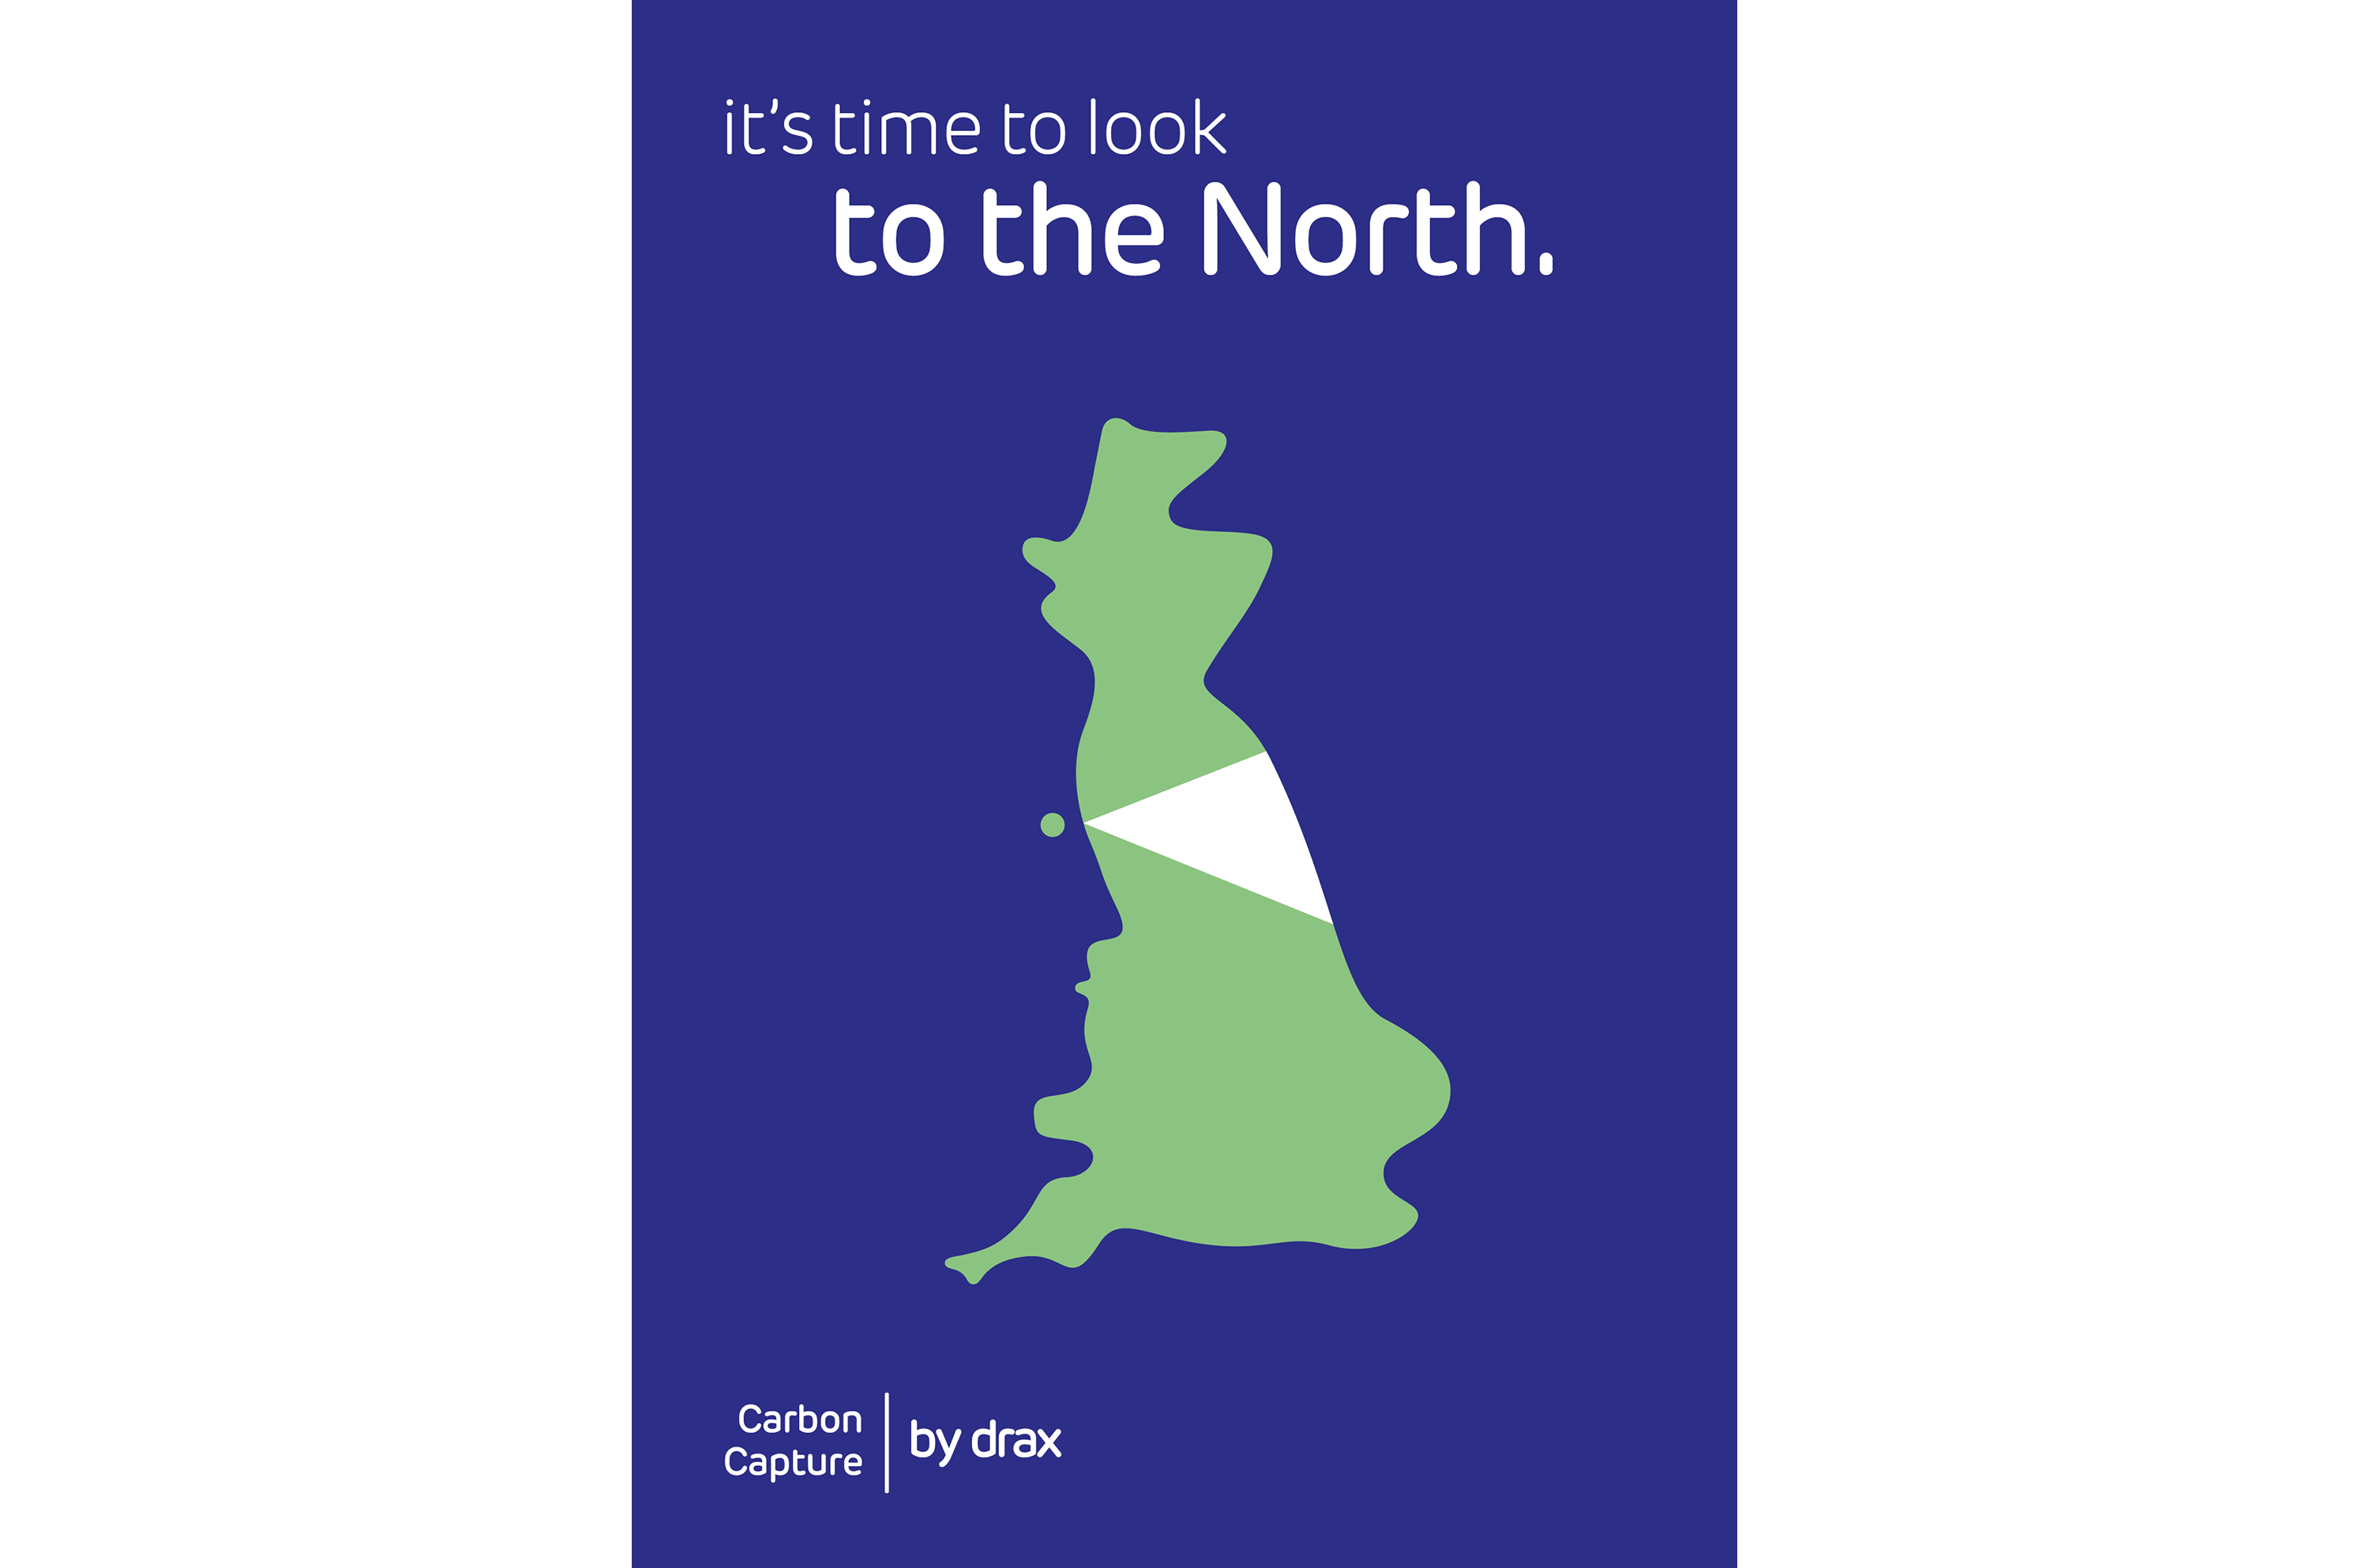 It's time to look to the North.